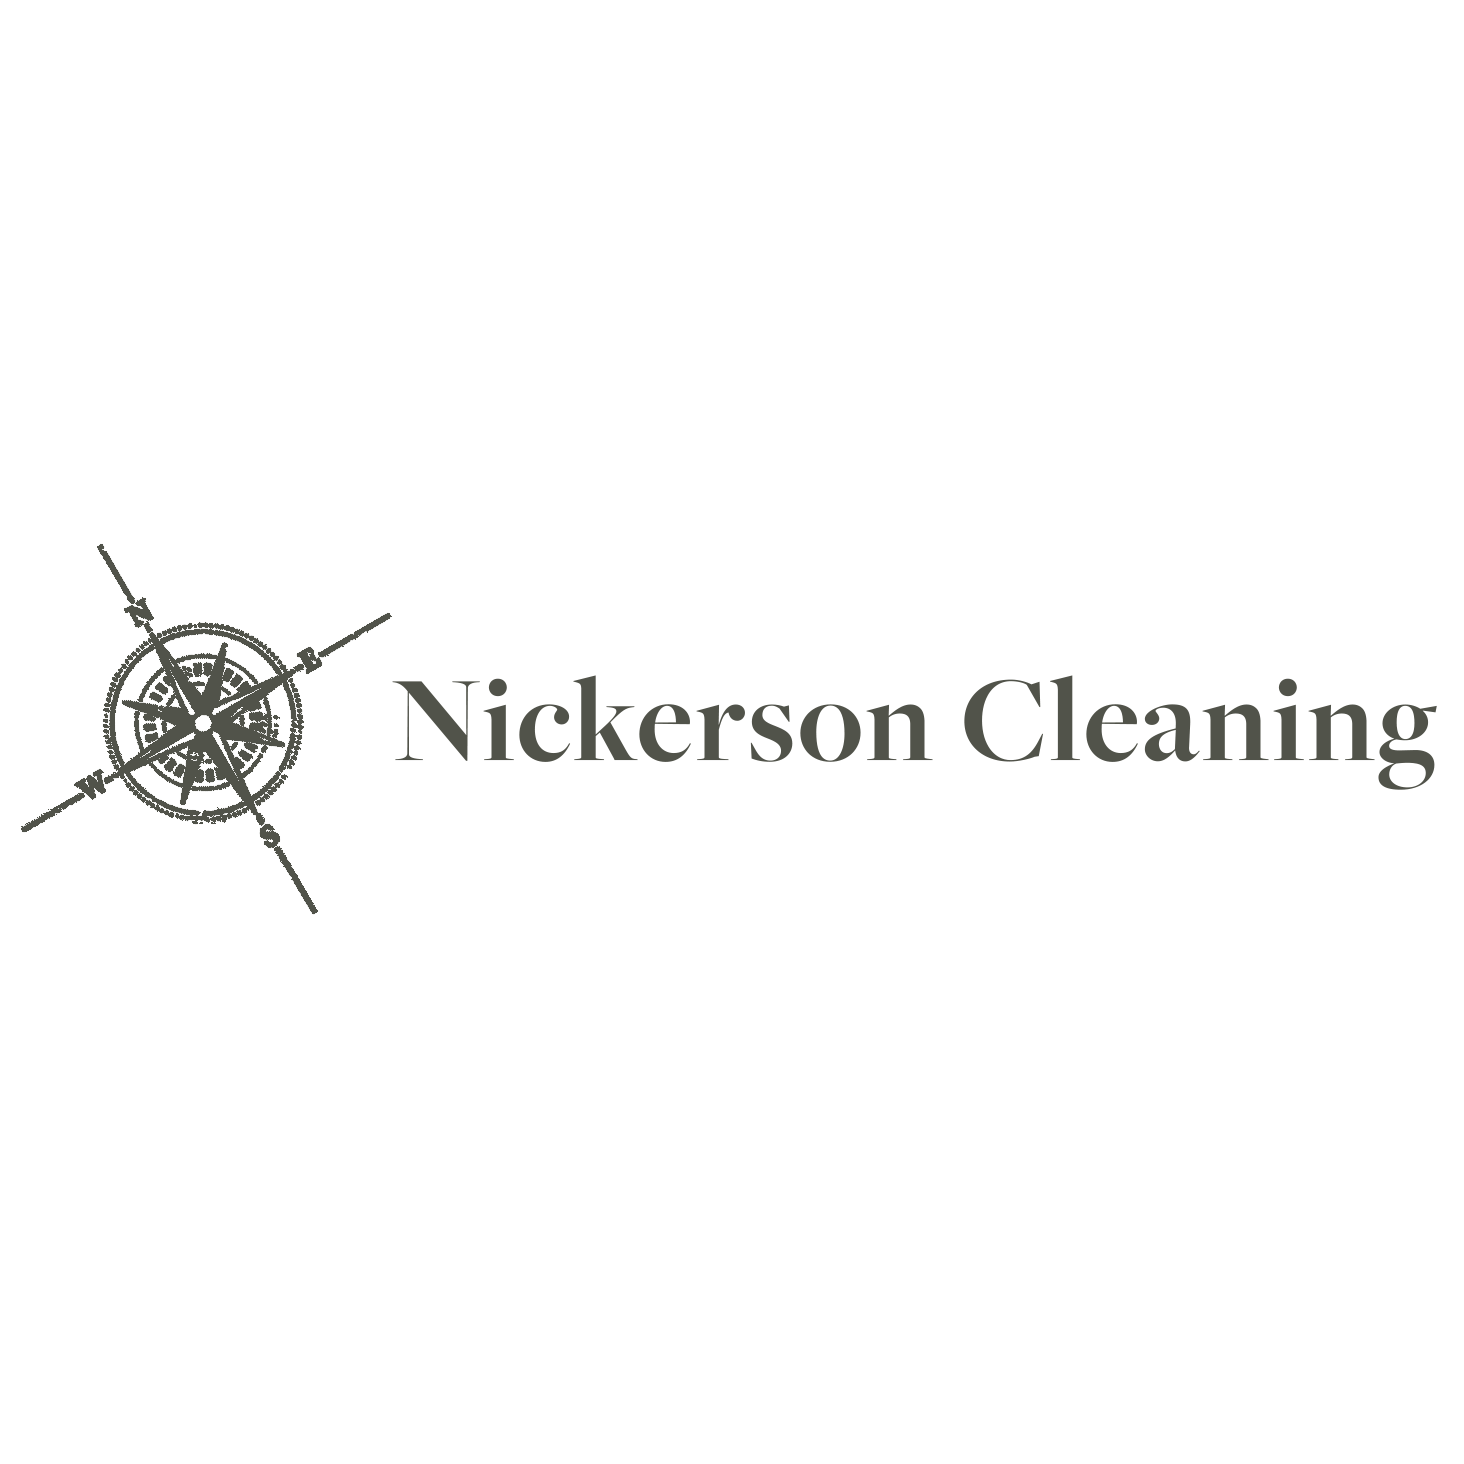 Nickerson Cleaning